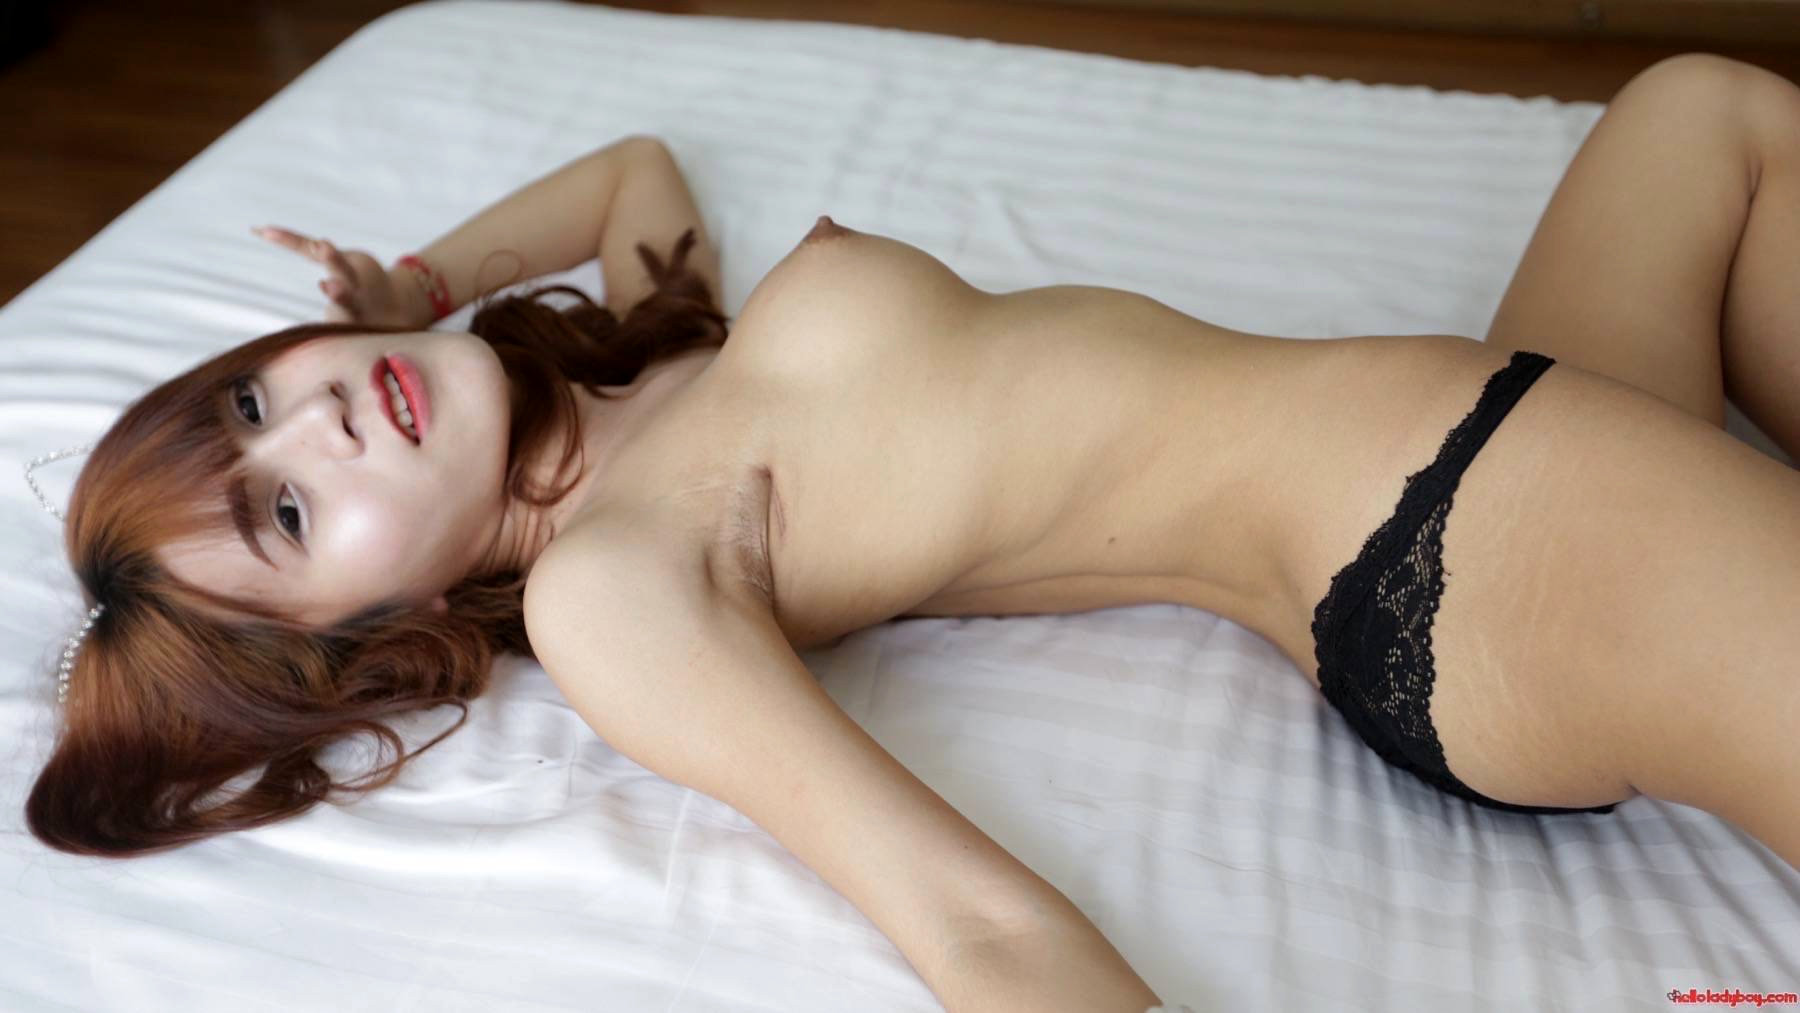 18 Year Old Racy And Filthy Asian Tranny Gets A Facial From White Tourist